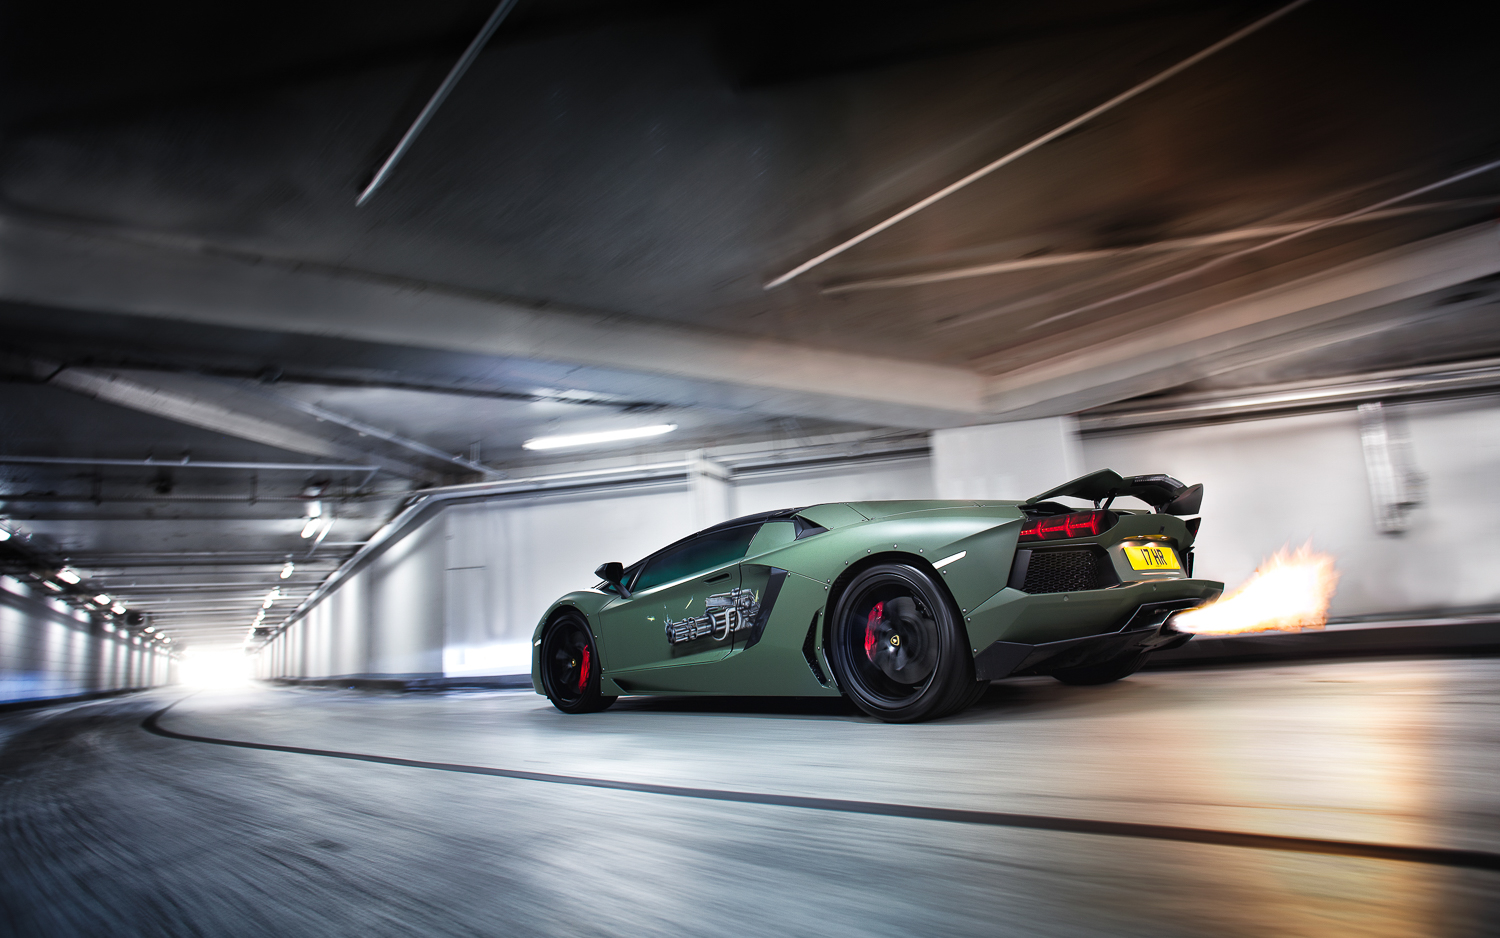 SMoores_14-12-24_Army Aventador_0003-Edit-Edit.jpg